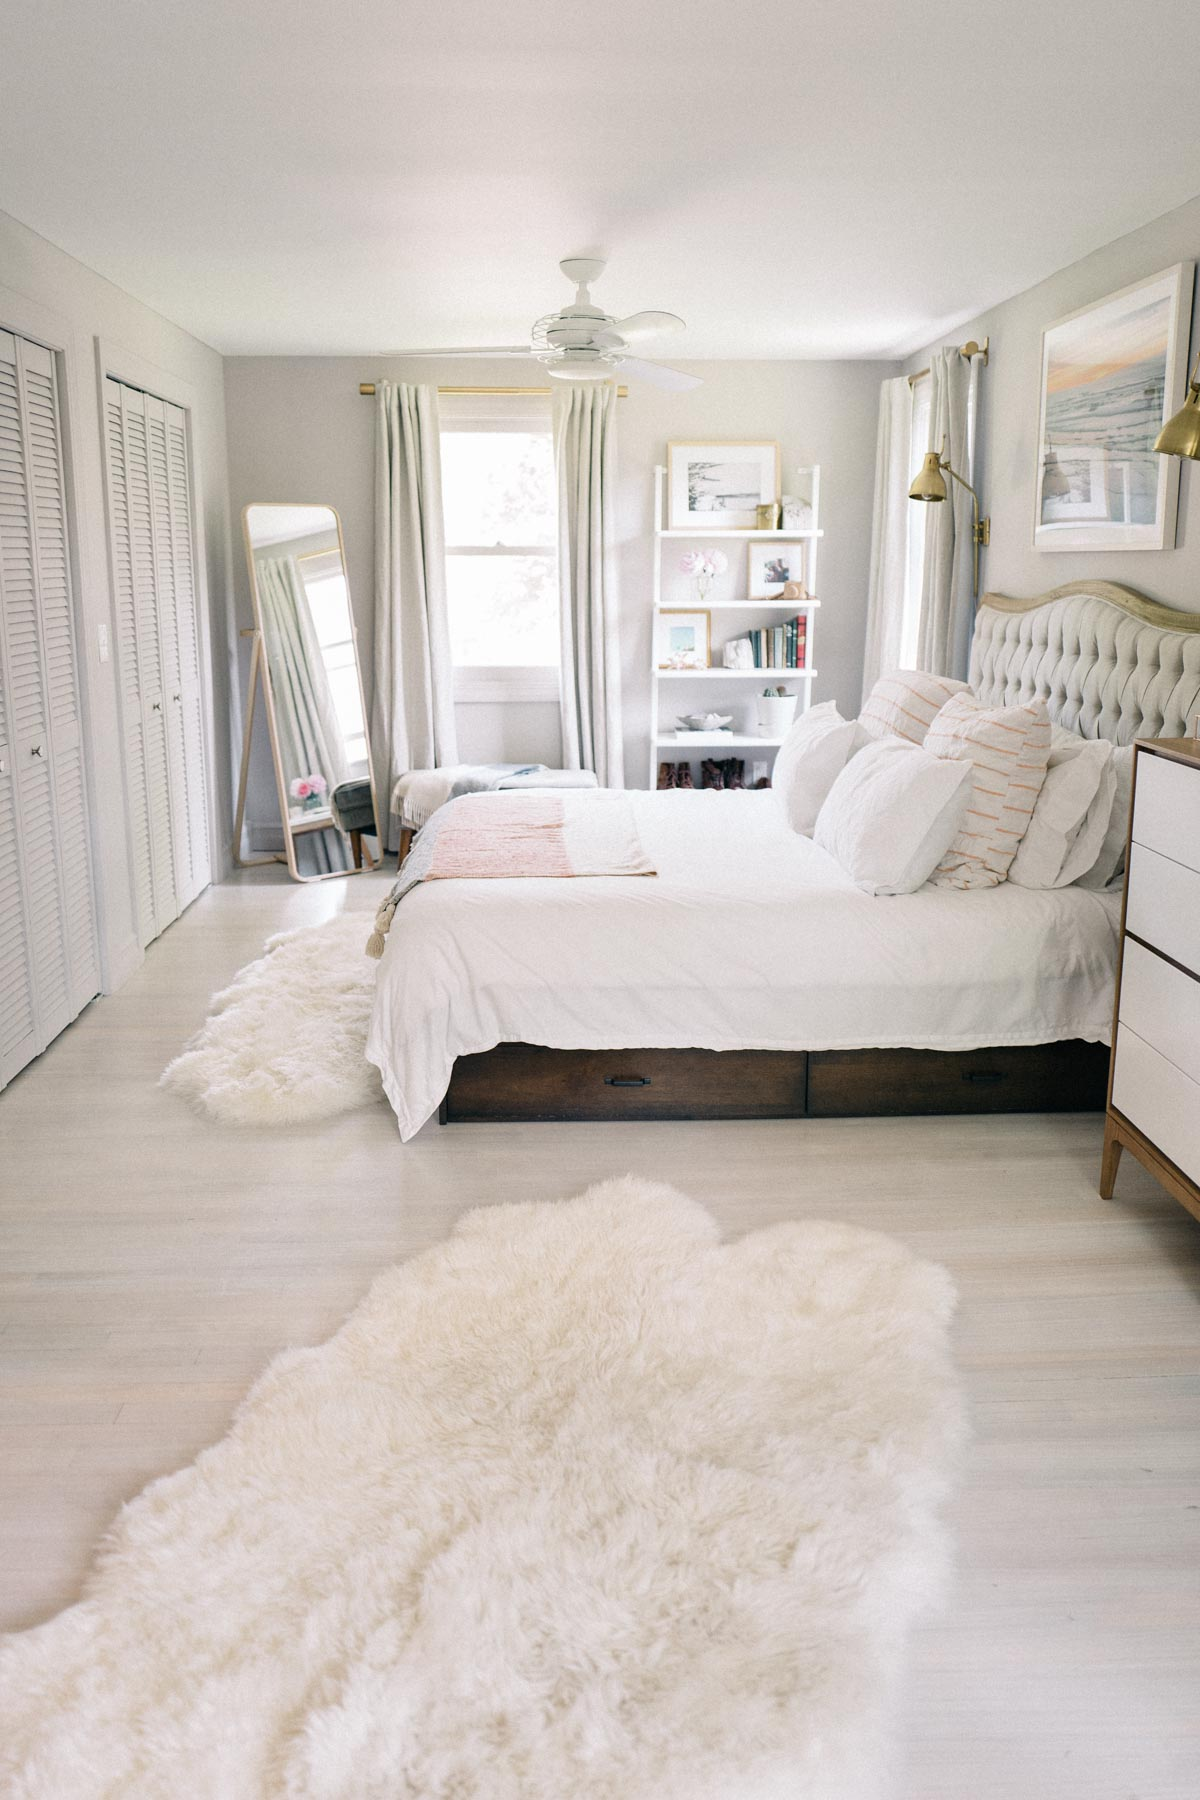 Jess Ann Kirby reveals her master bedroom renovations with faux fur throws and white washed floors